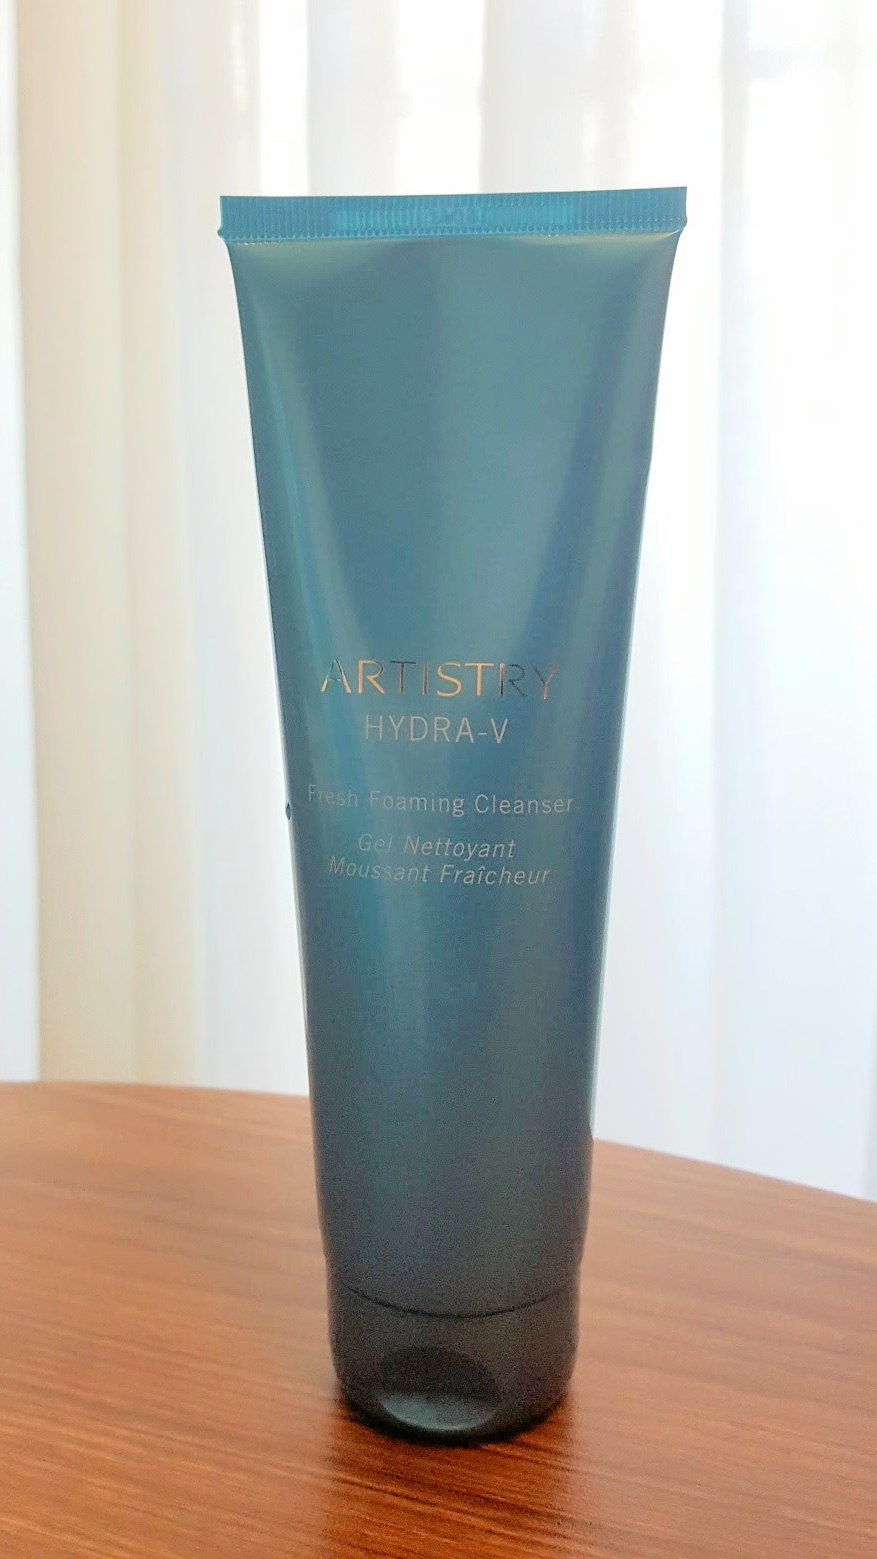 My everyday cleanser is the Artistry Hydra-V Foaming Cleanser…. I love it! I have combination skin and this cleanser helps remove dirt, oil, and makeup. I use it with a facial cleansing brush every day, both day and night.